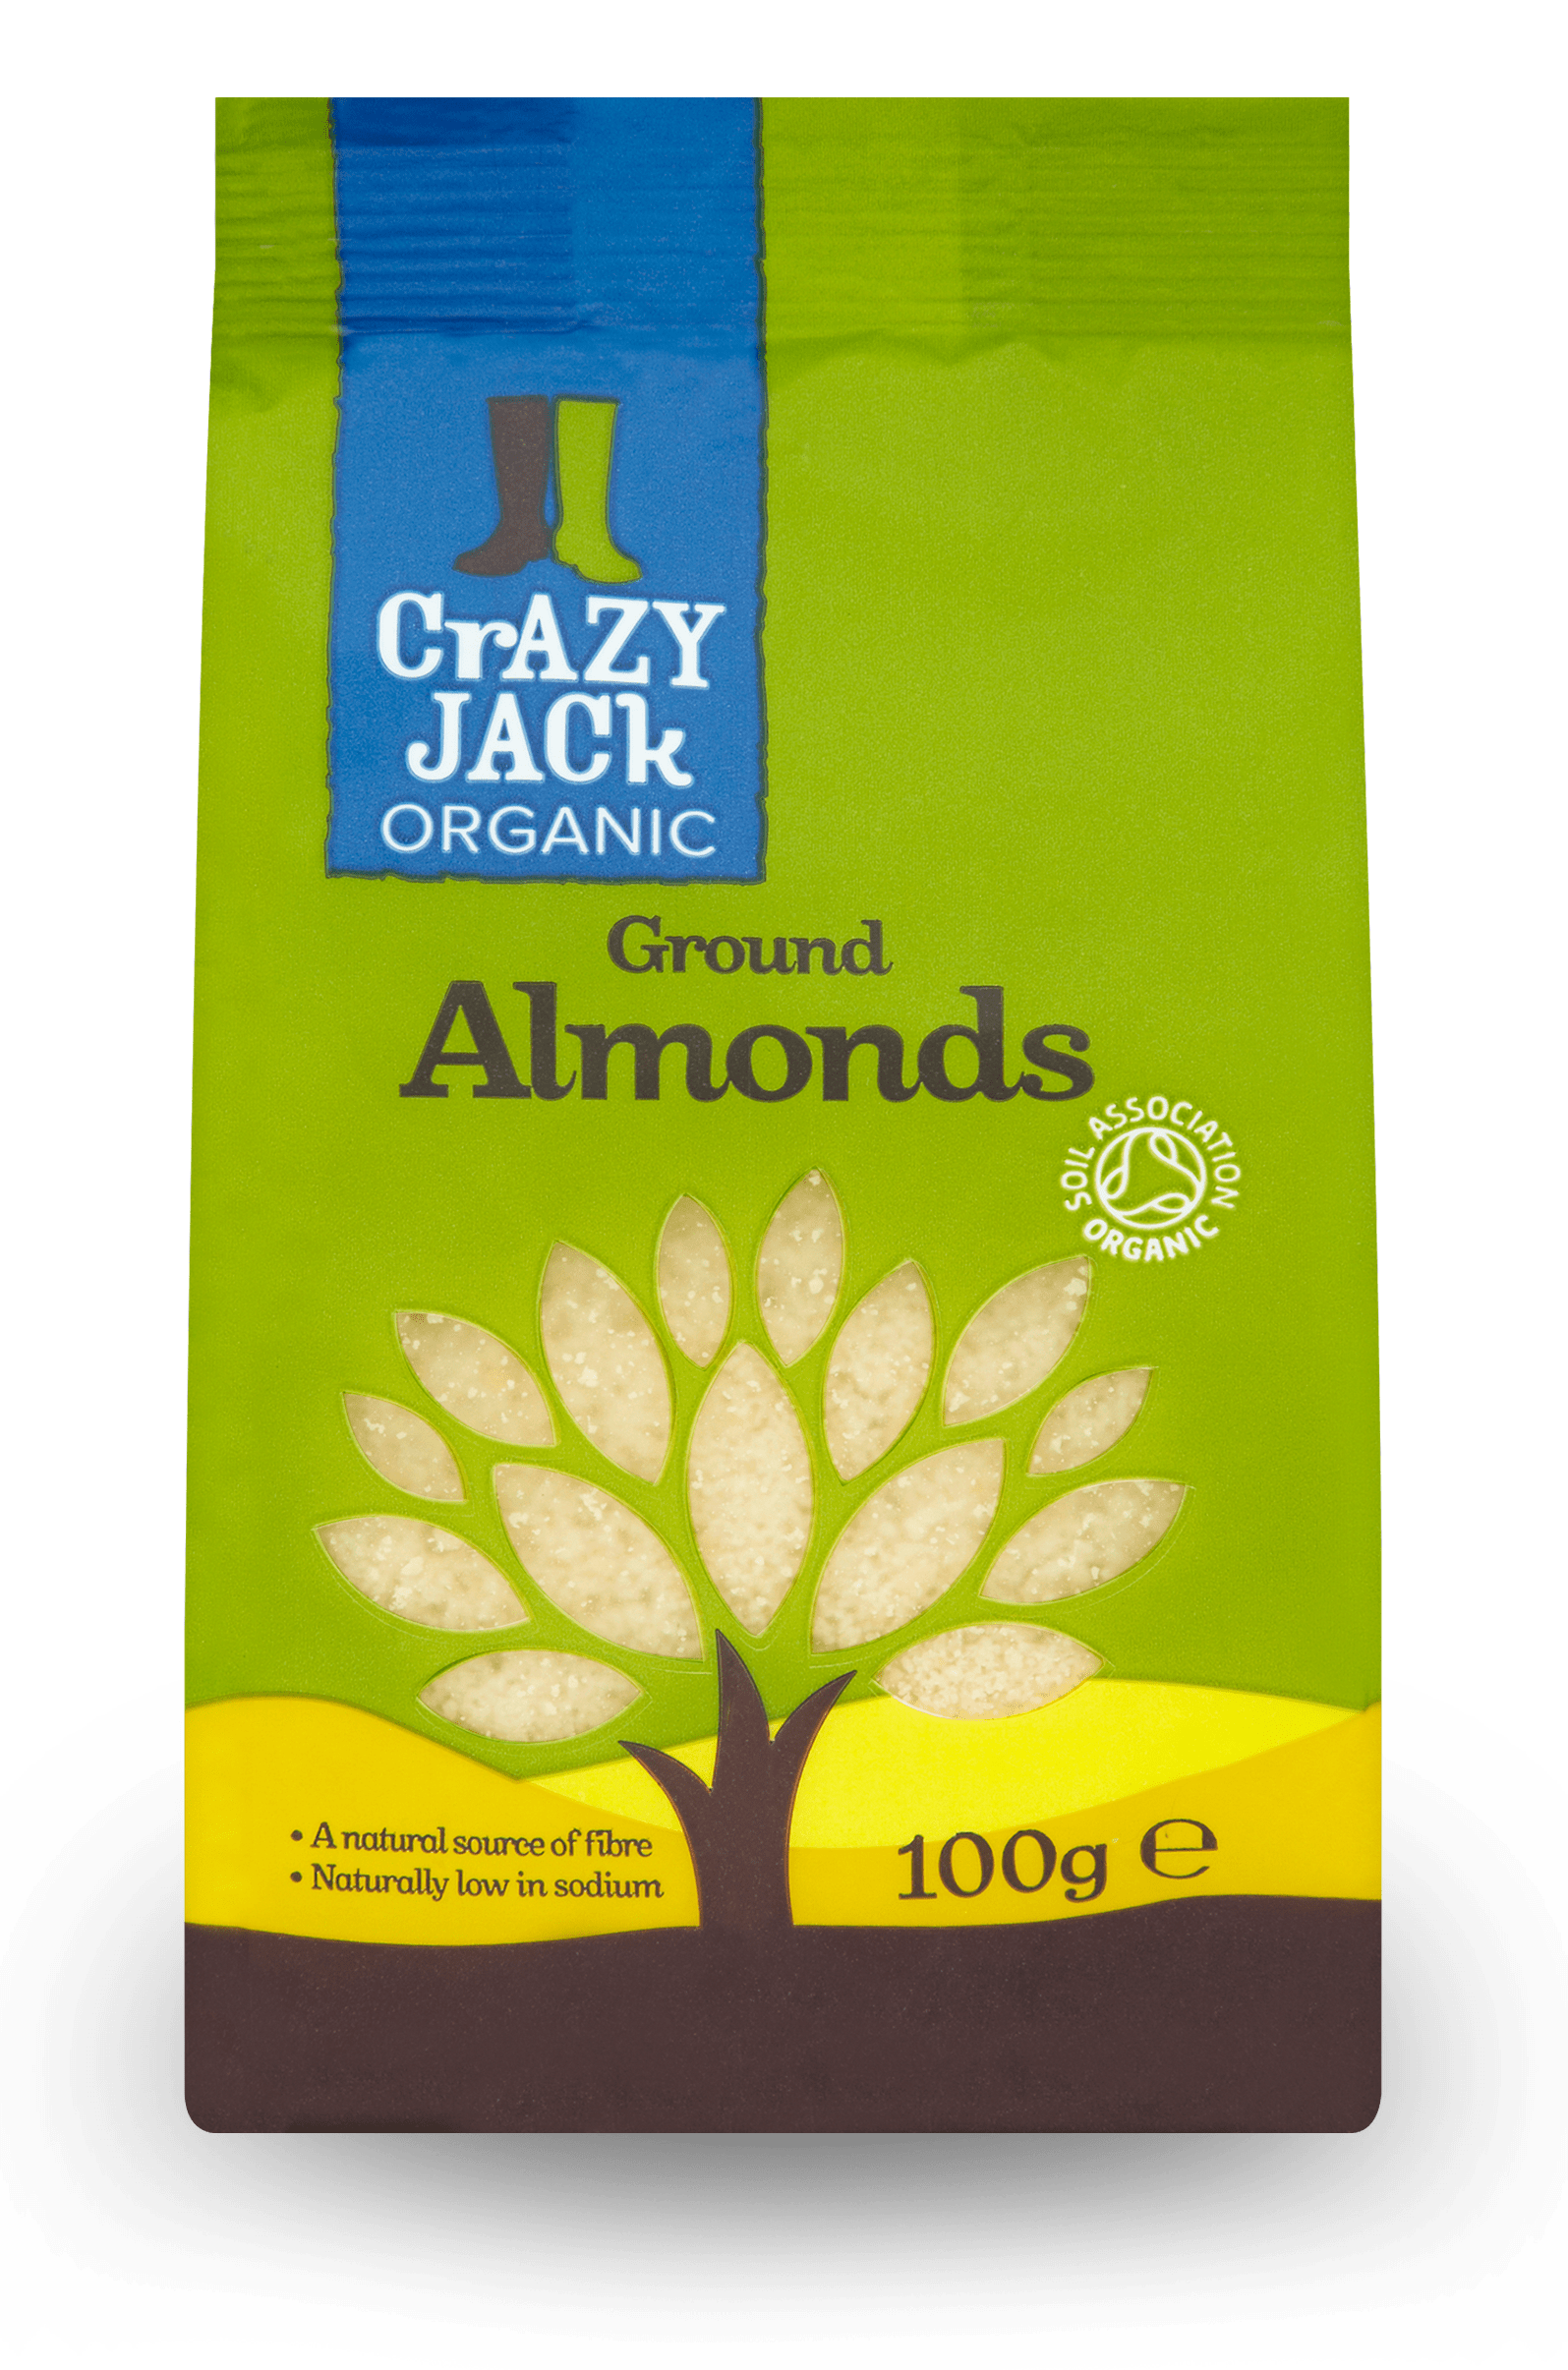 100g packet of organic ground almonds